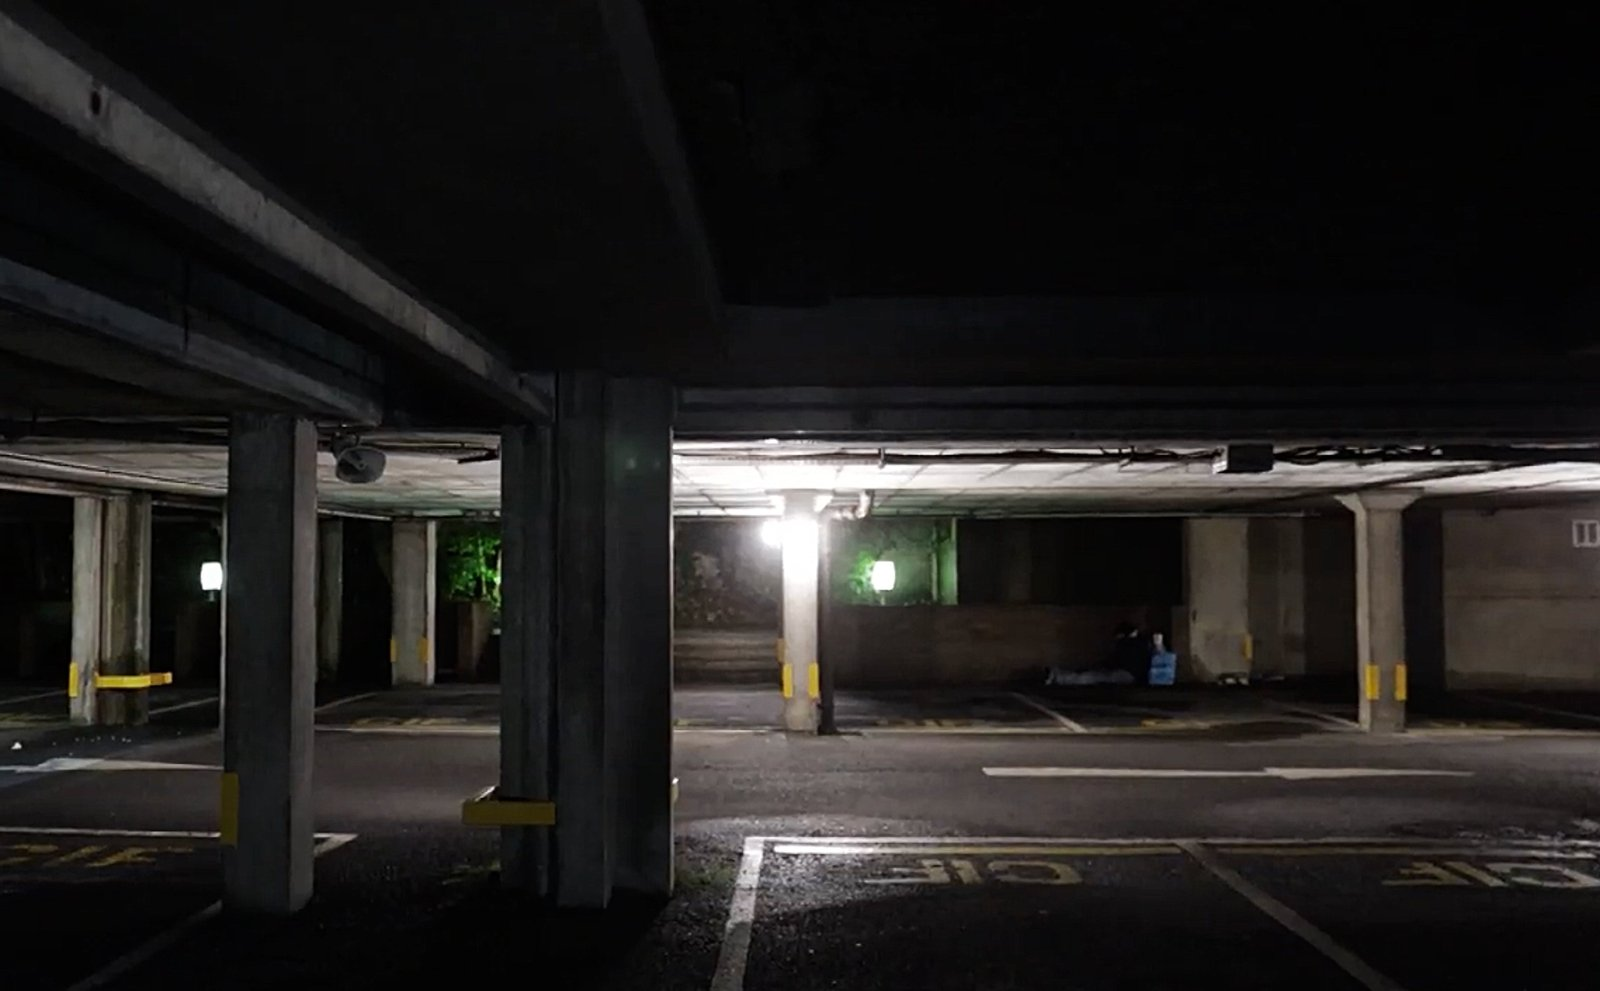 Image - Joe Nolan has been living on a sleeping bag in a secluded area of a multi-storey car park for months